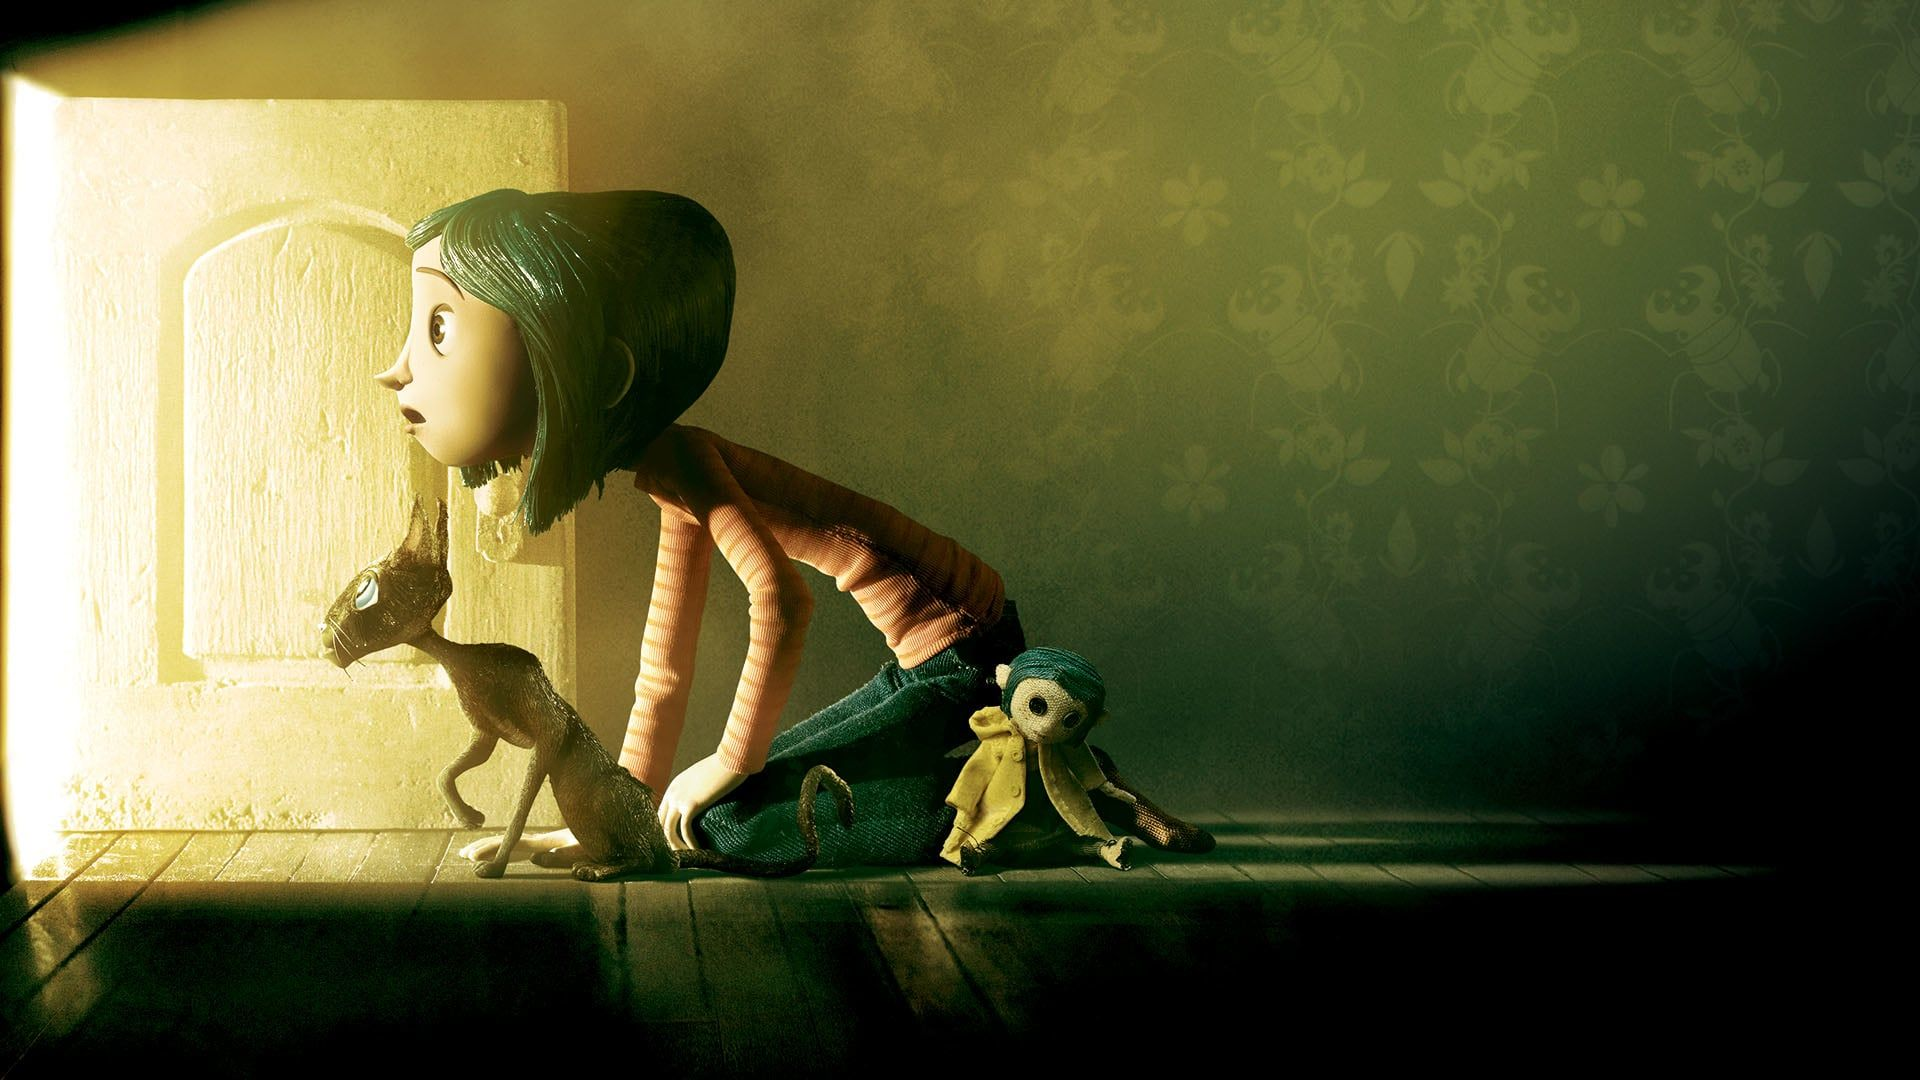 Coraline with her doll and her cat, gazing amazed at what lies beyond the small door.